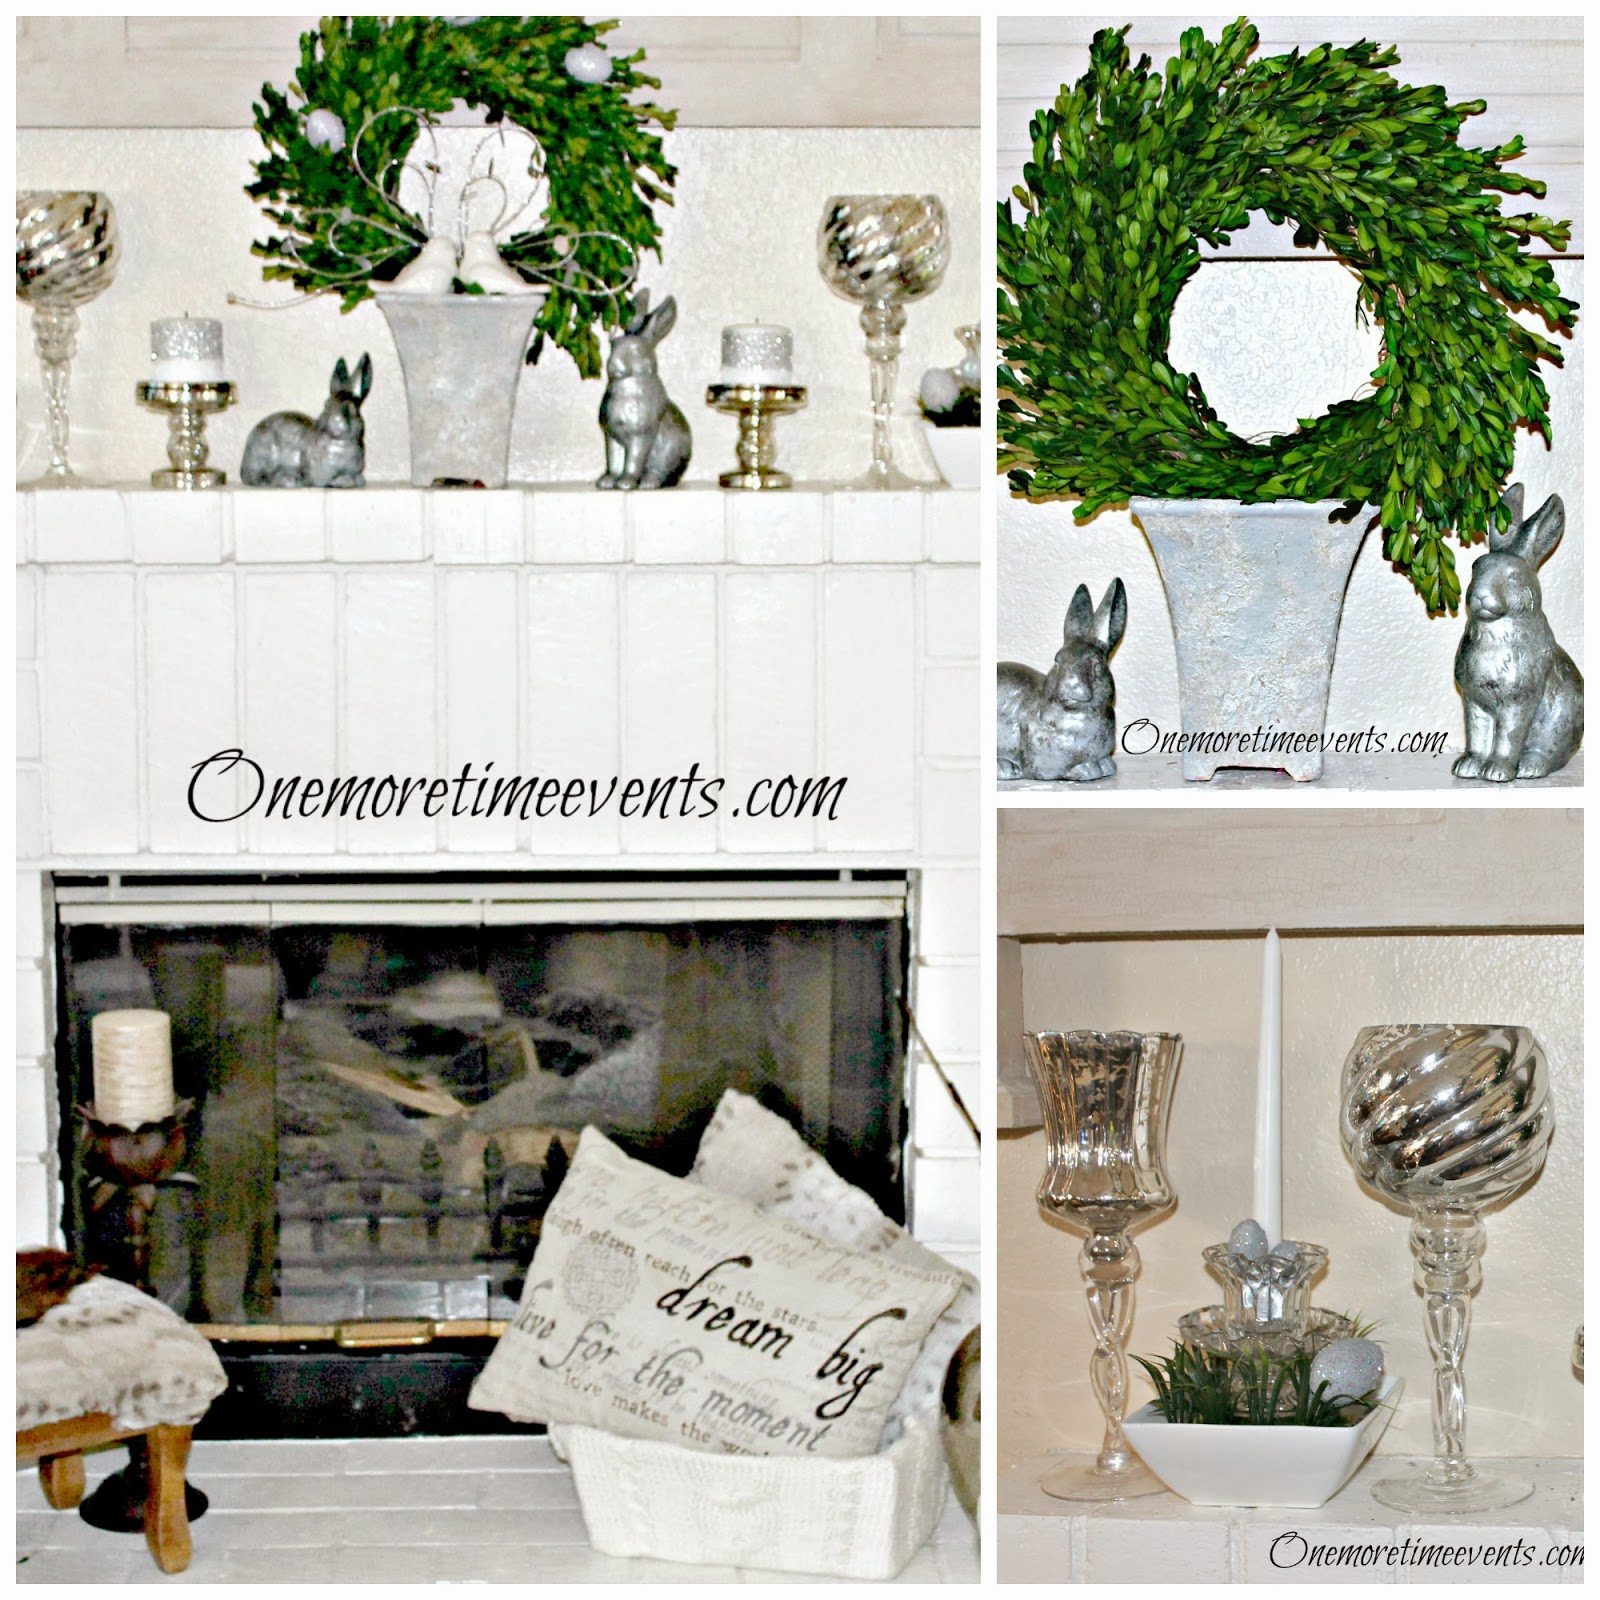 Spring Mantel at One More Time Events.com